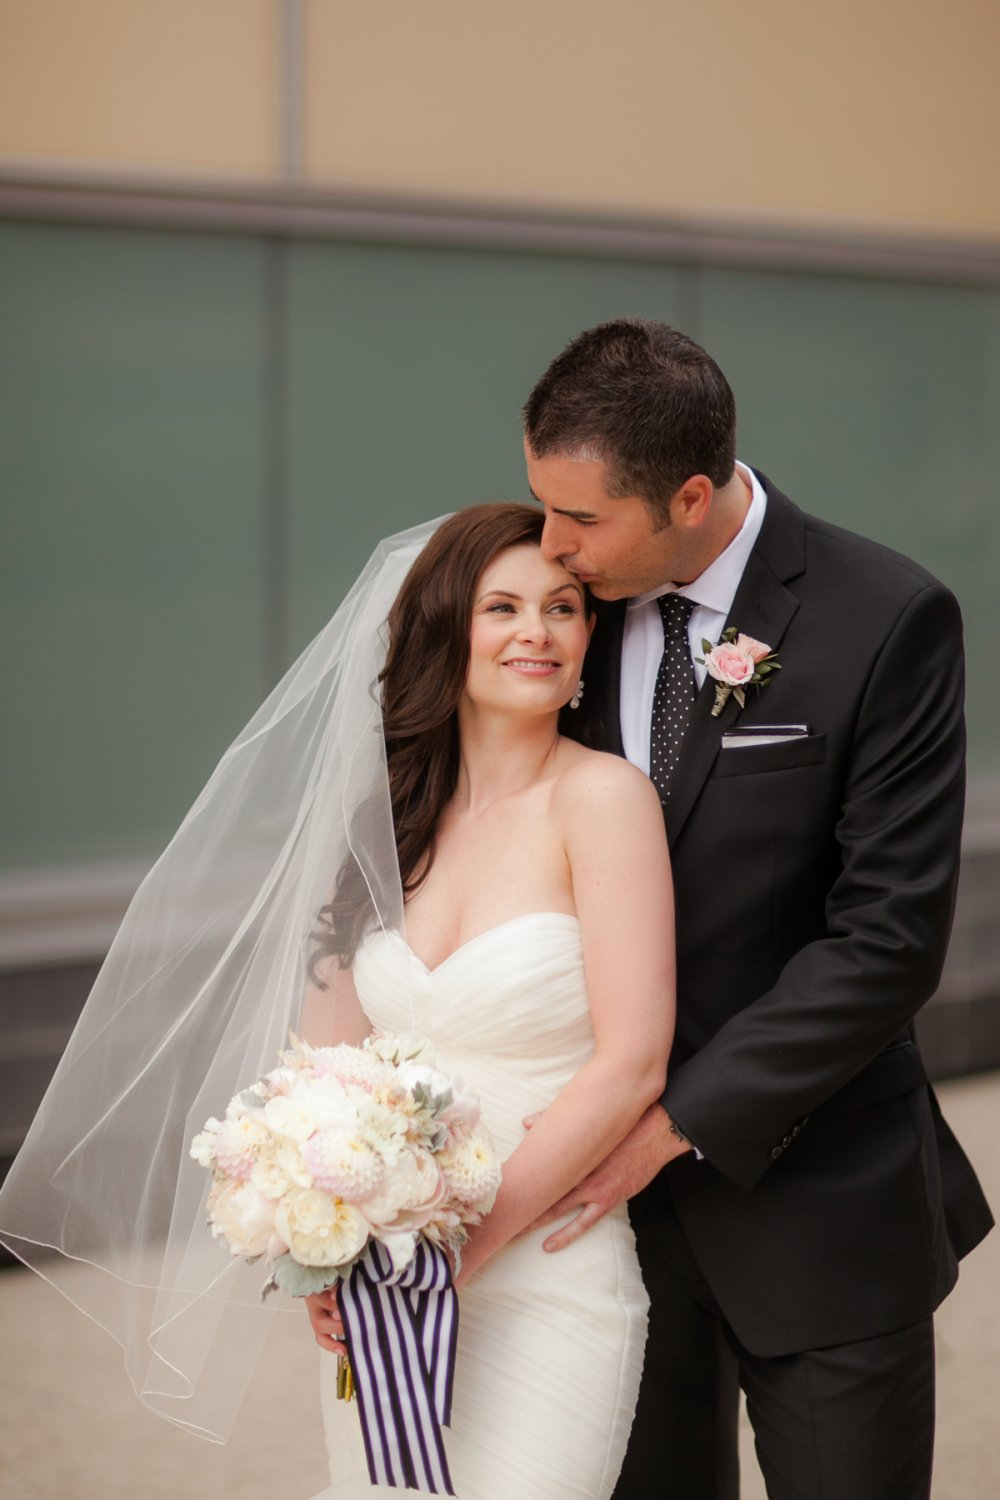 JF Hannigan Wedding Photography: Alicia and Andrew: wedding gallery 37